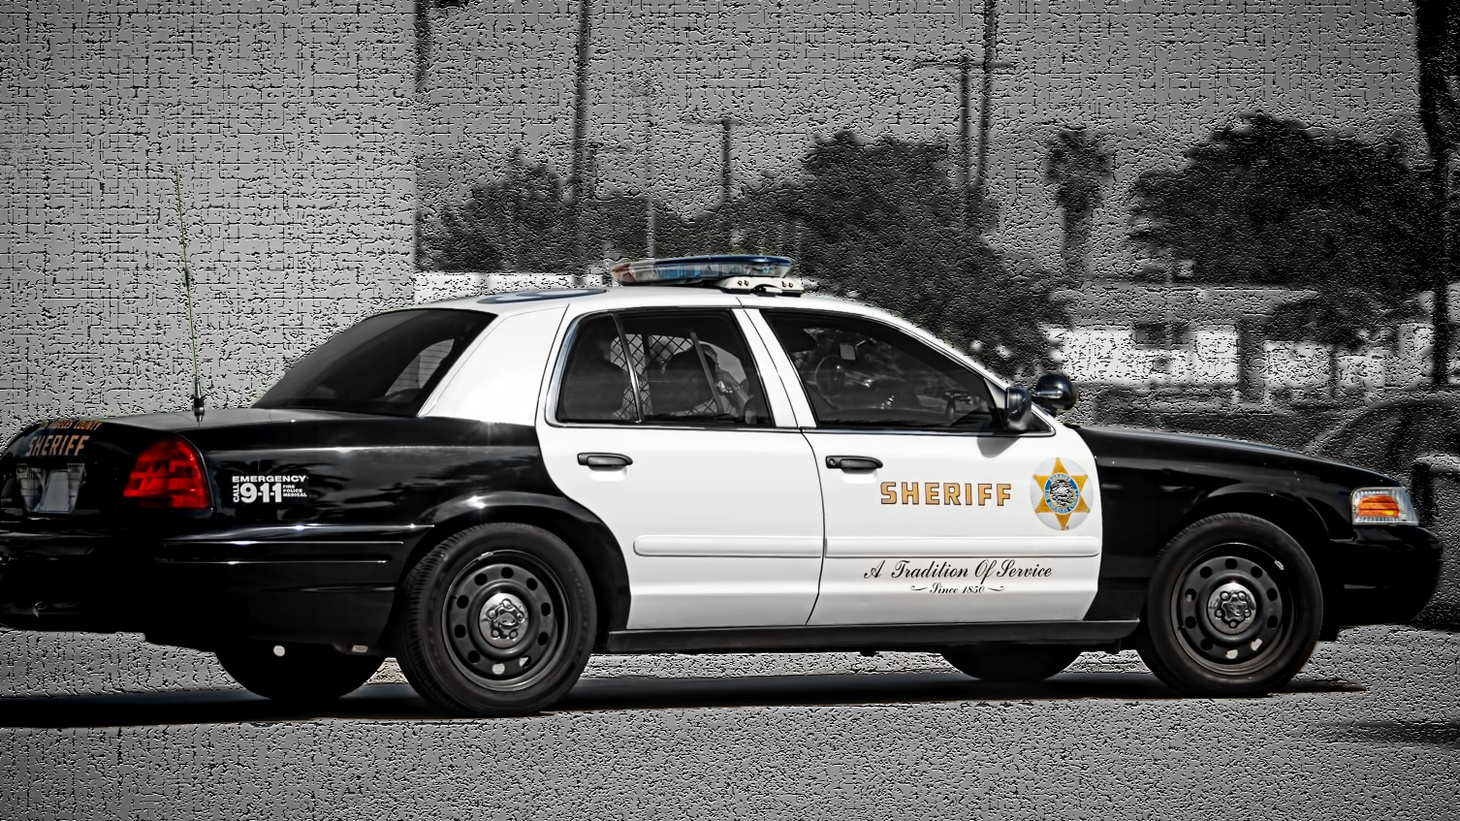 Los Angeles Sheriff's Department vehicle.